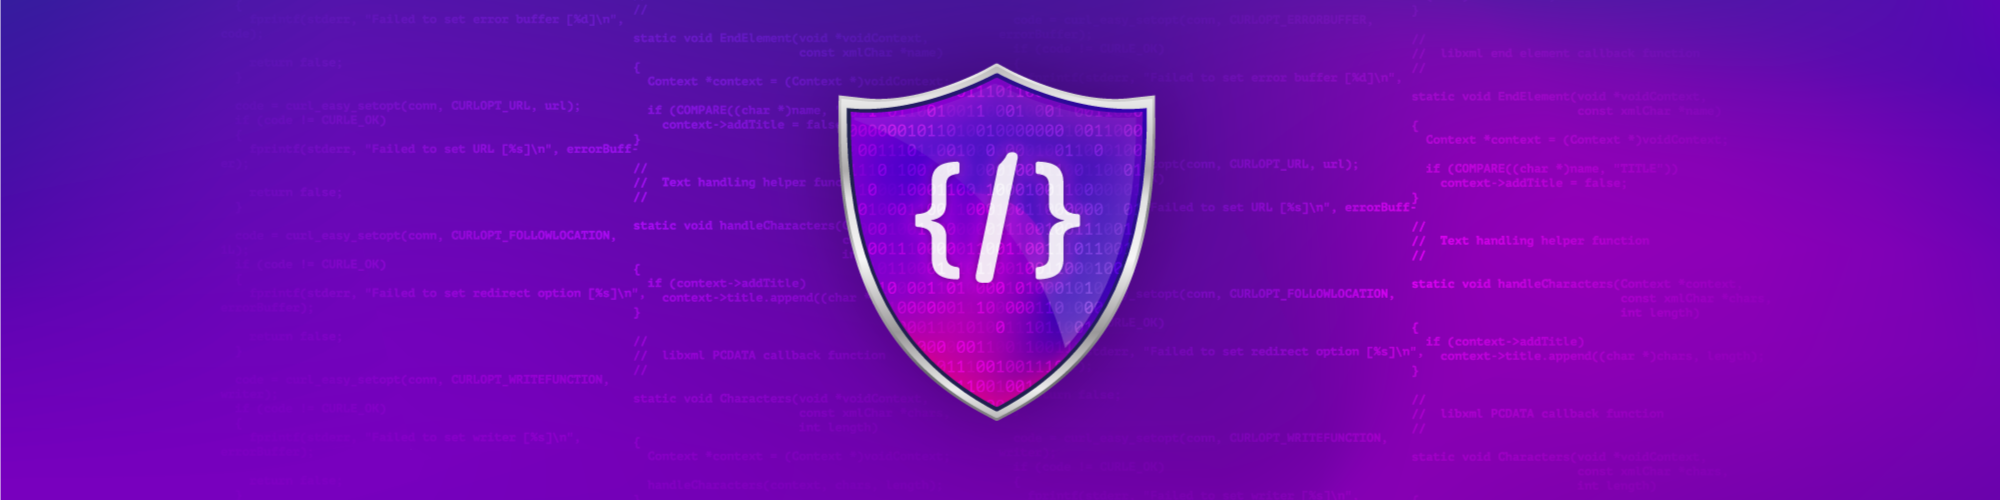 Snyk Code for Static Application Security Testing (SAST)